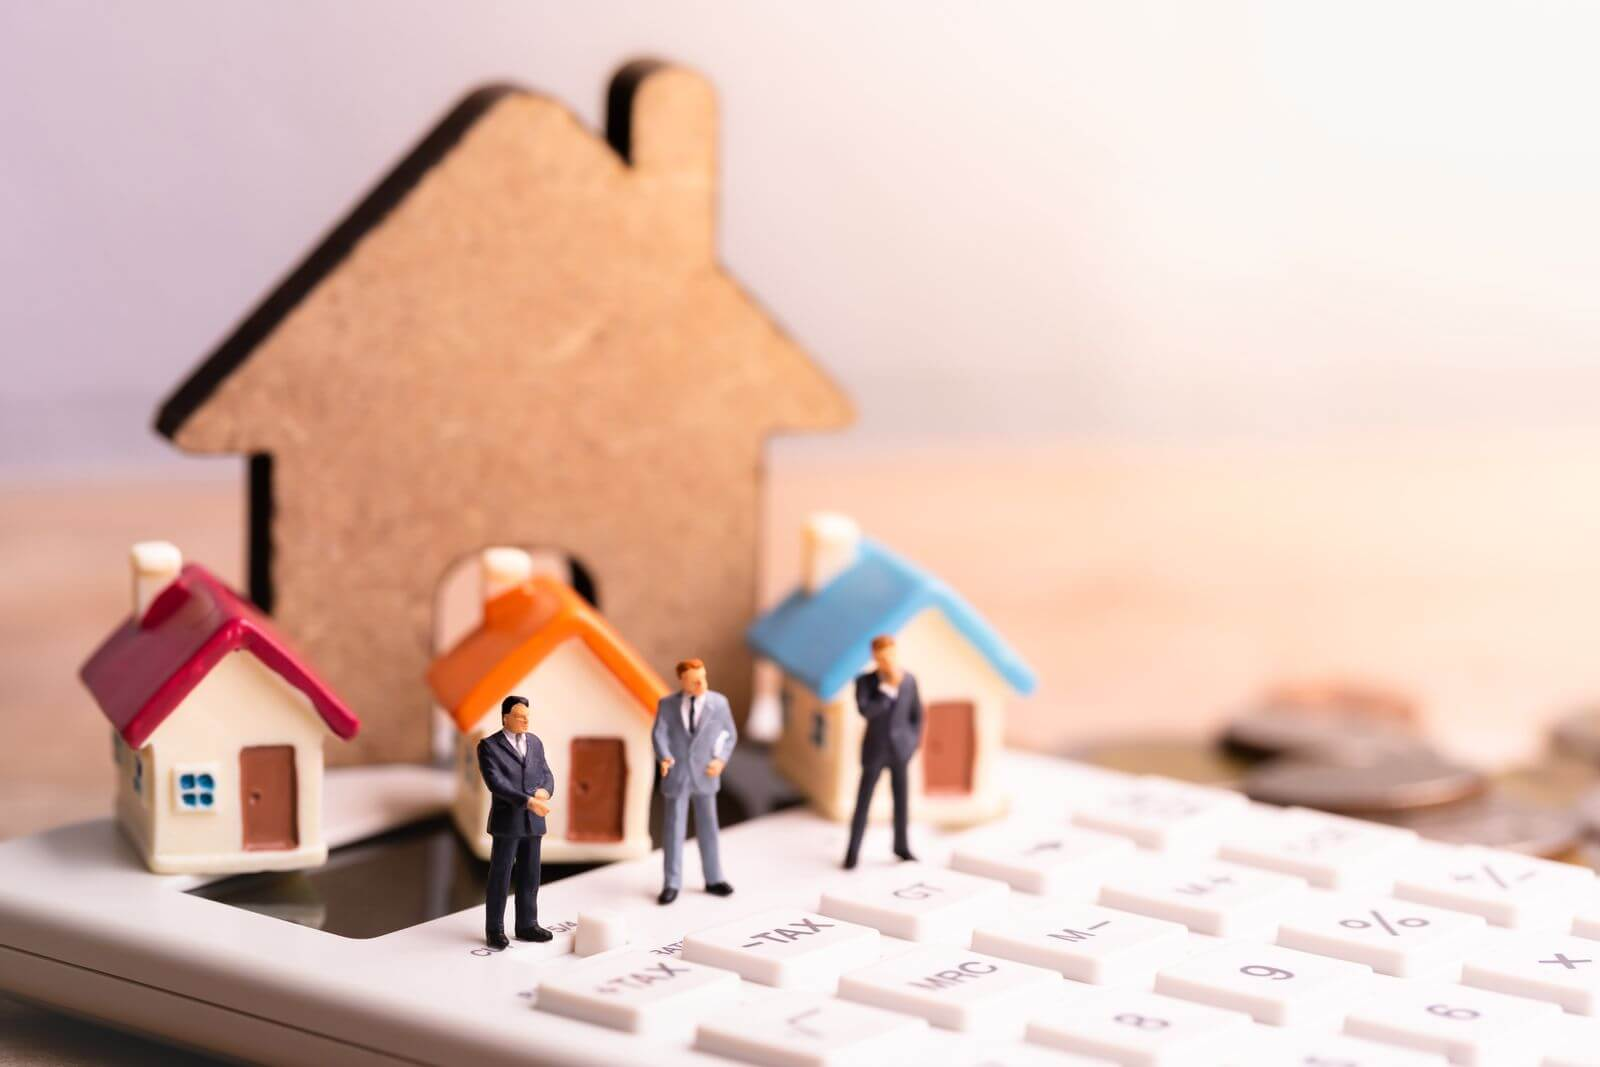 What is the outlook for the housing market?